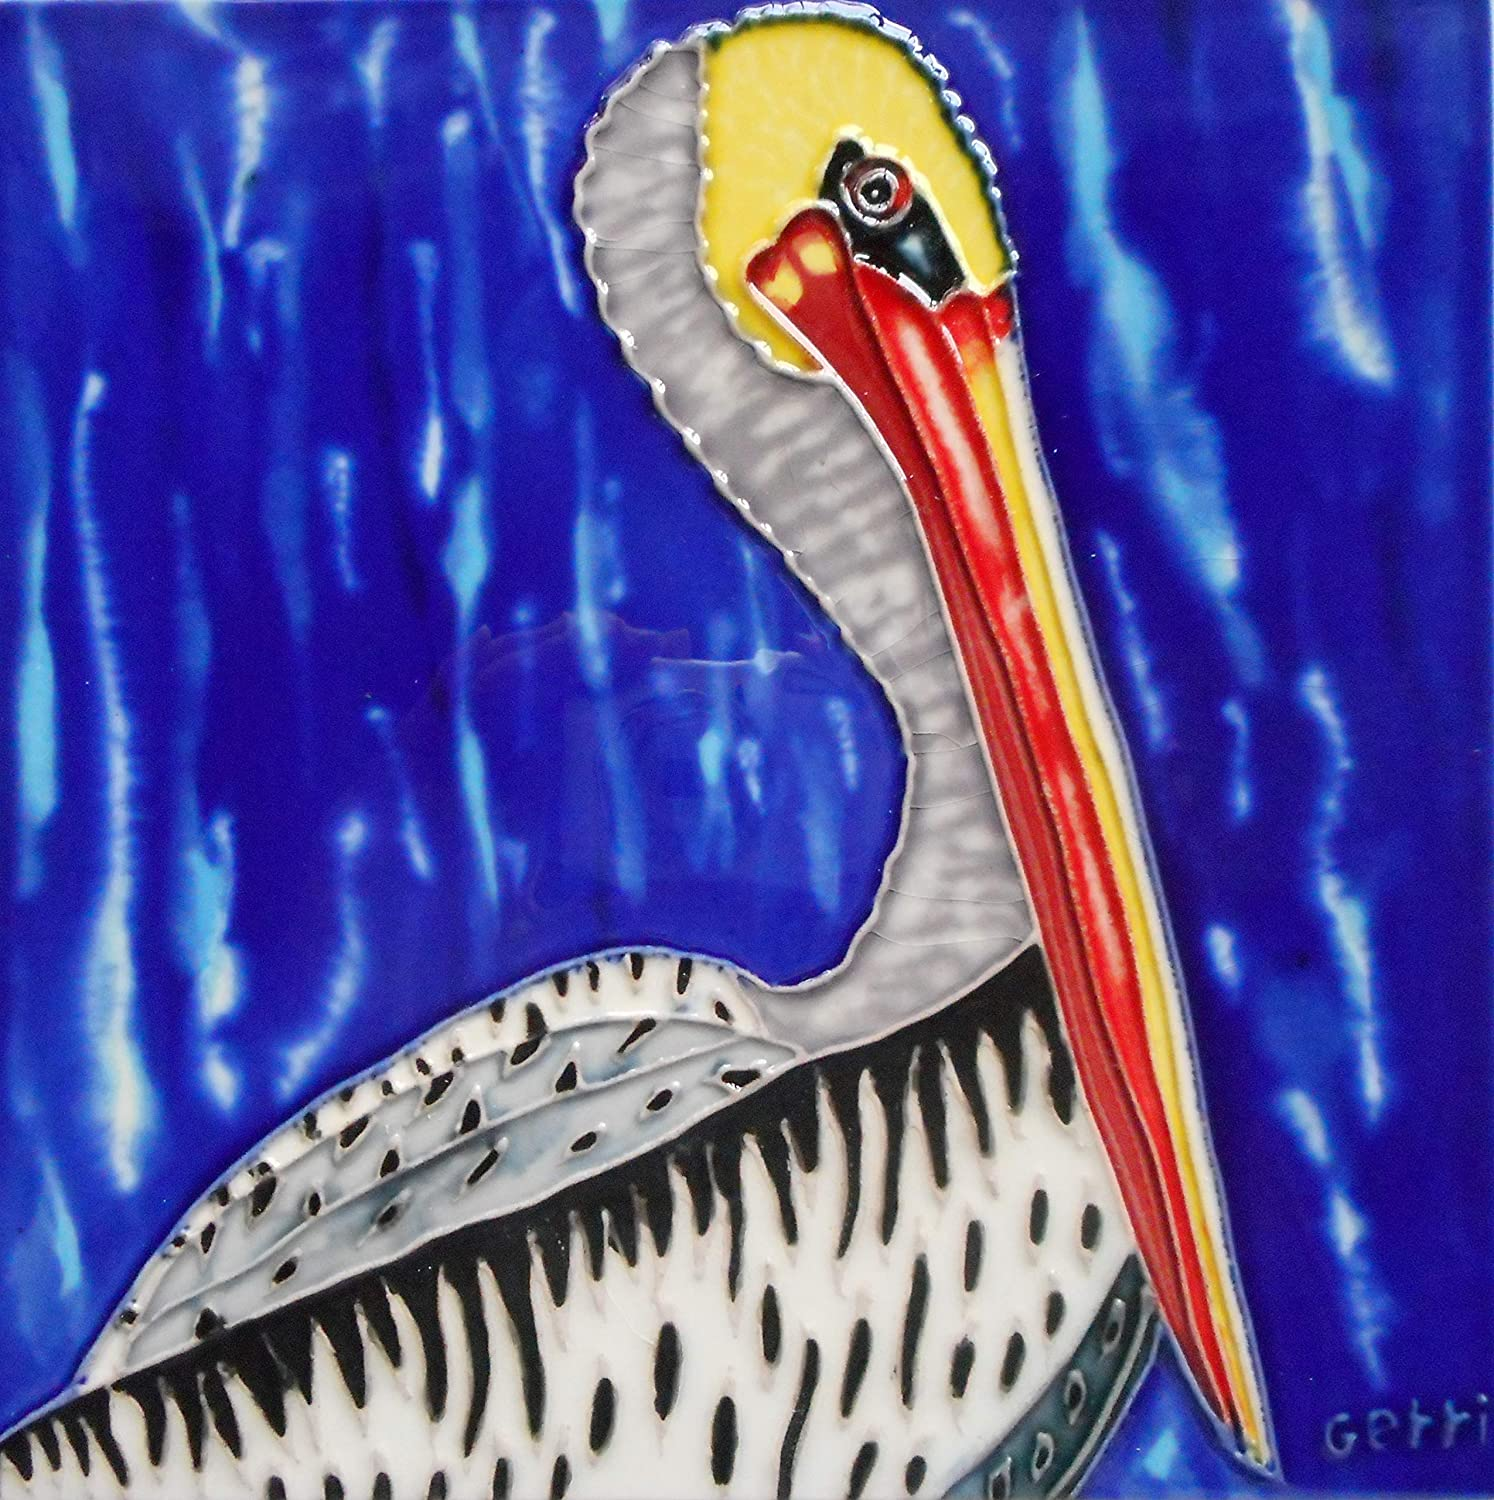 Tile Craft Pelican Hand Painted Ceramic Art Tile 8 x 8 inches with Easel Back